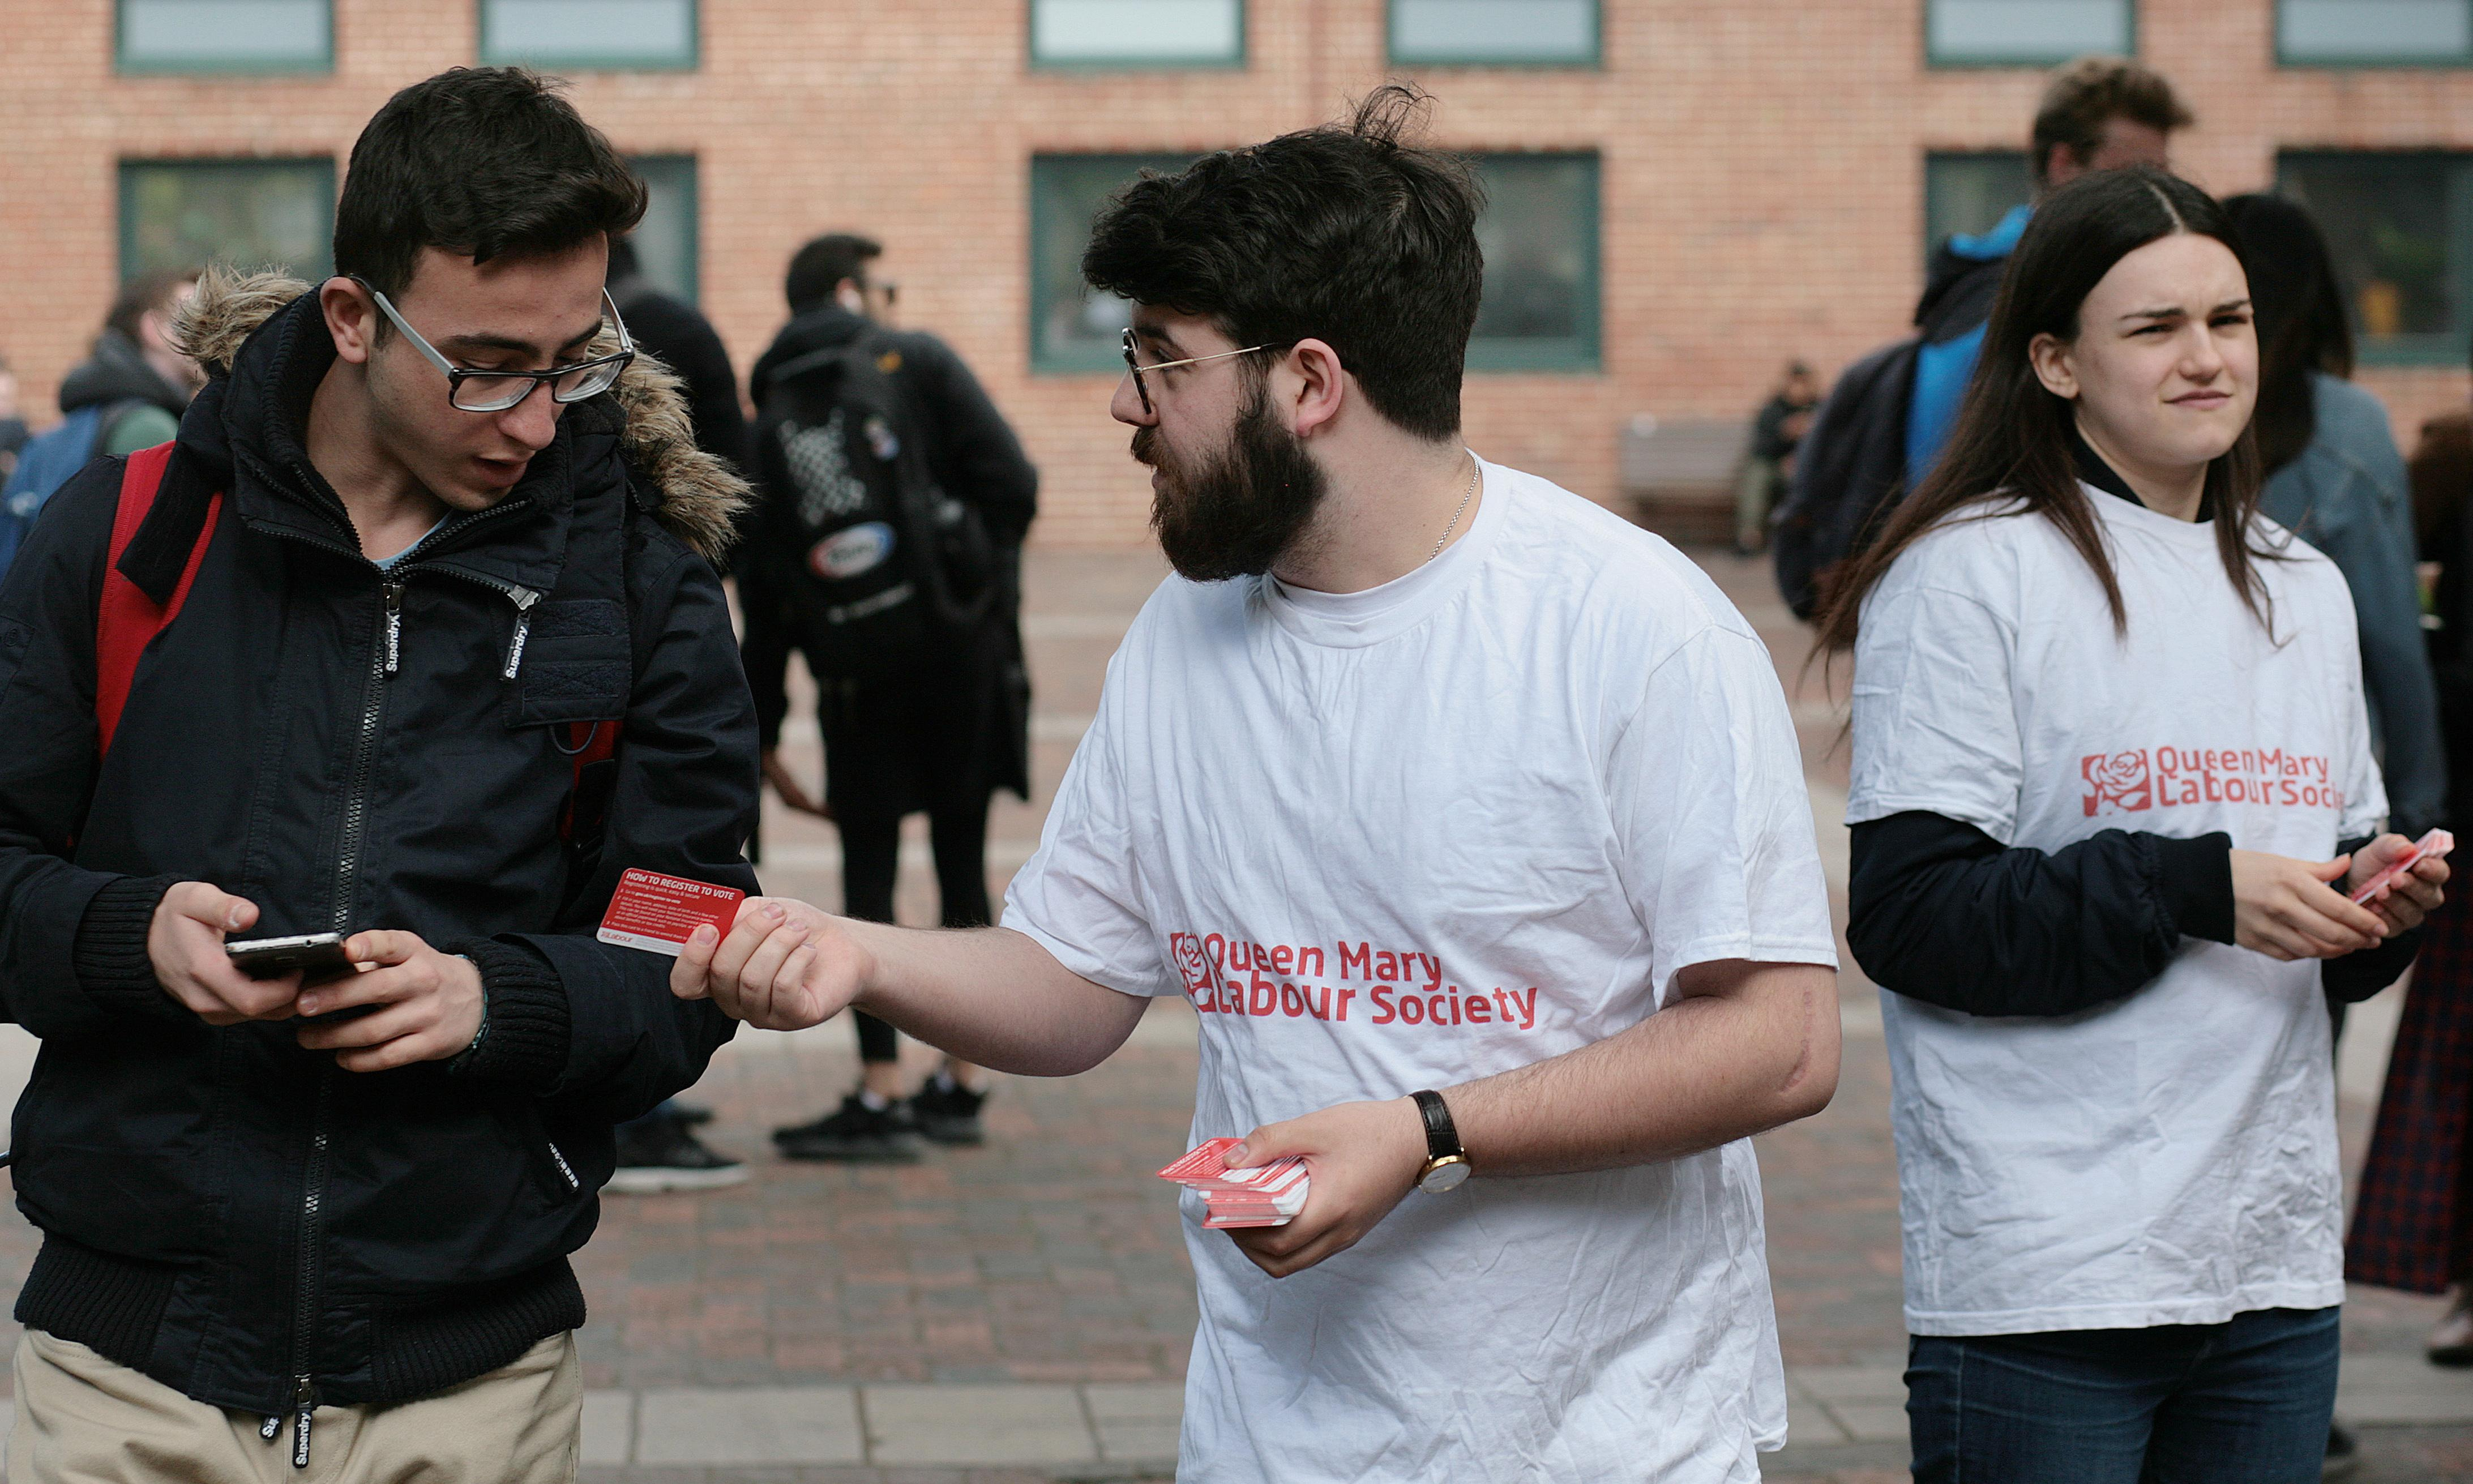 Students, this is your chance to get Boris Johnson and the Tories out. Here's how